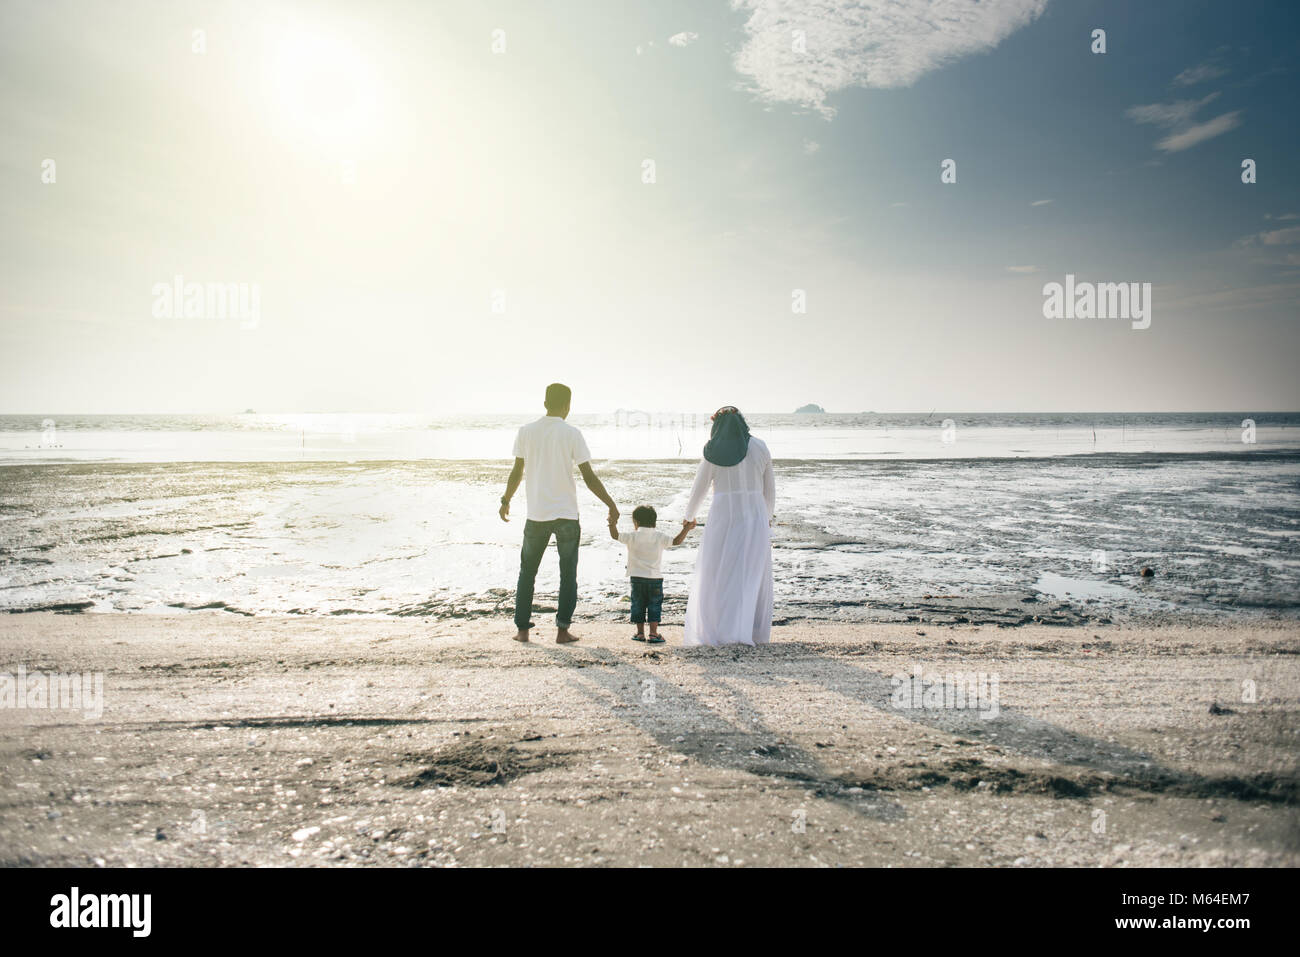 happy family having fun time together at the beach having nice sunset view located in Pantai Remis,Kuala selangor,selangor,malaysia. - Stock Image